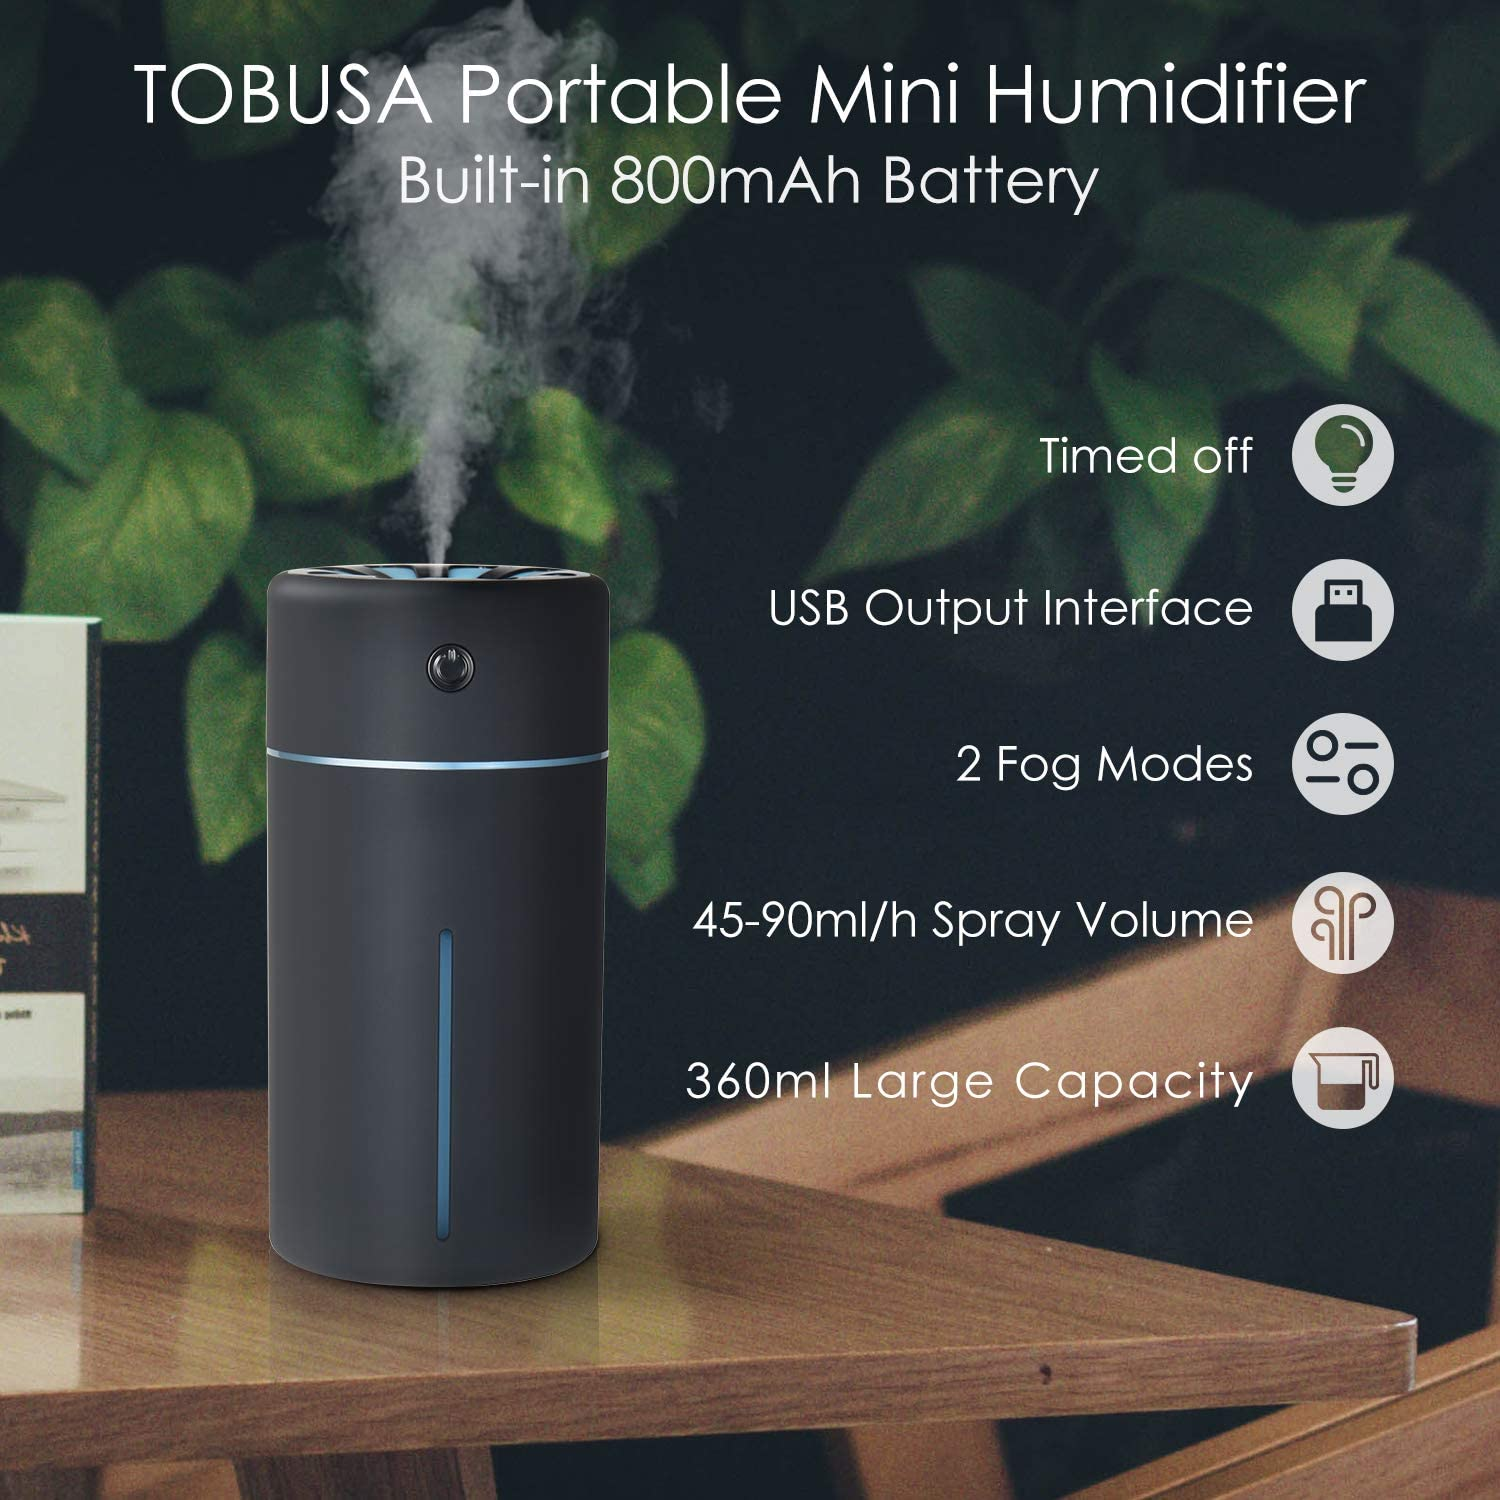 USB Output Ports,No Water Prompt,for Travel Home Office Car Portable Mini Humidifier,360ml Small Cool Mist Humidifiers,with 2 Mist Modes,90mI//h Spray Volume,800mAh Rechargeable Battery Black